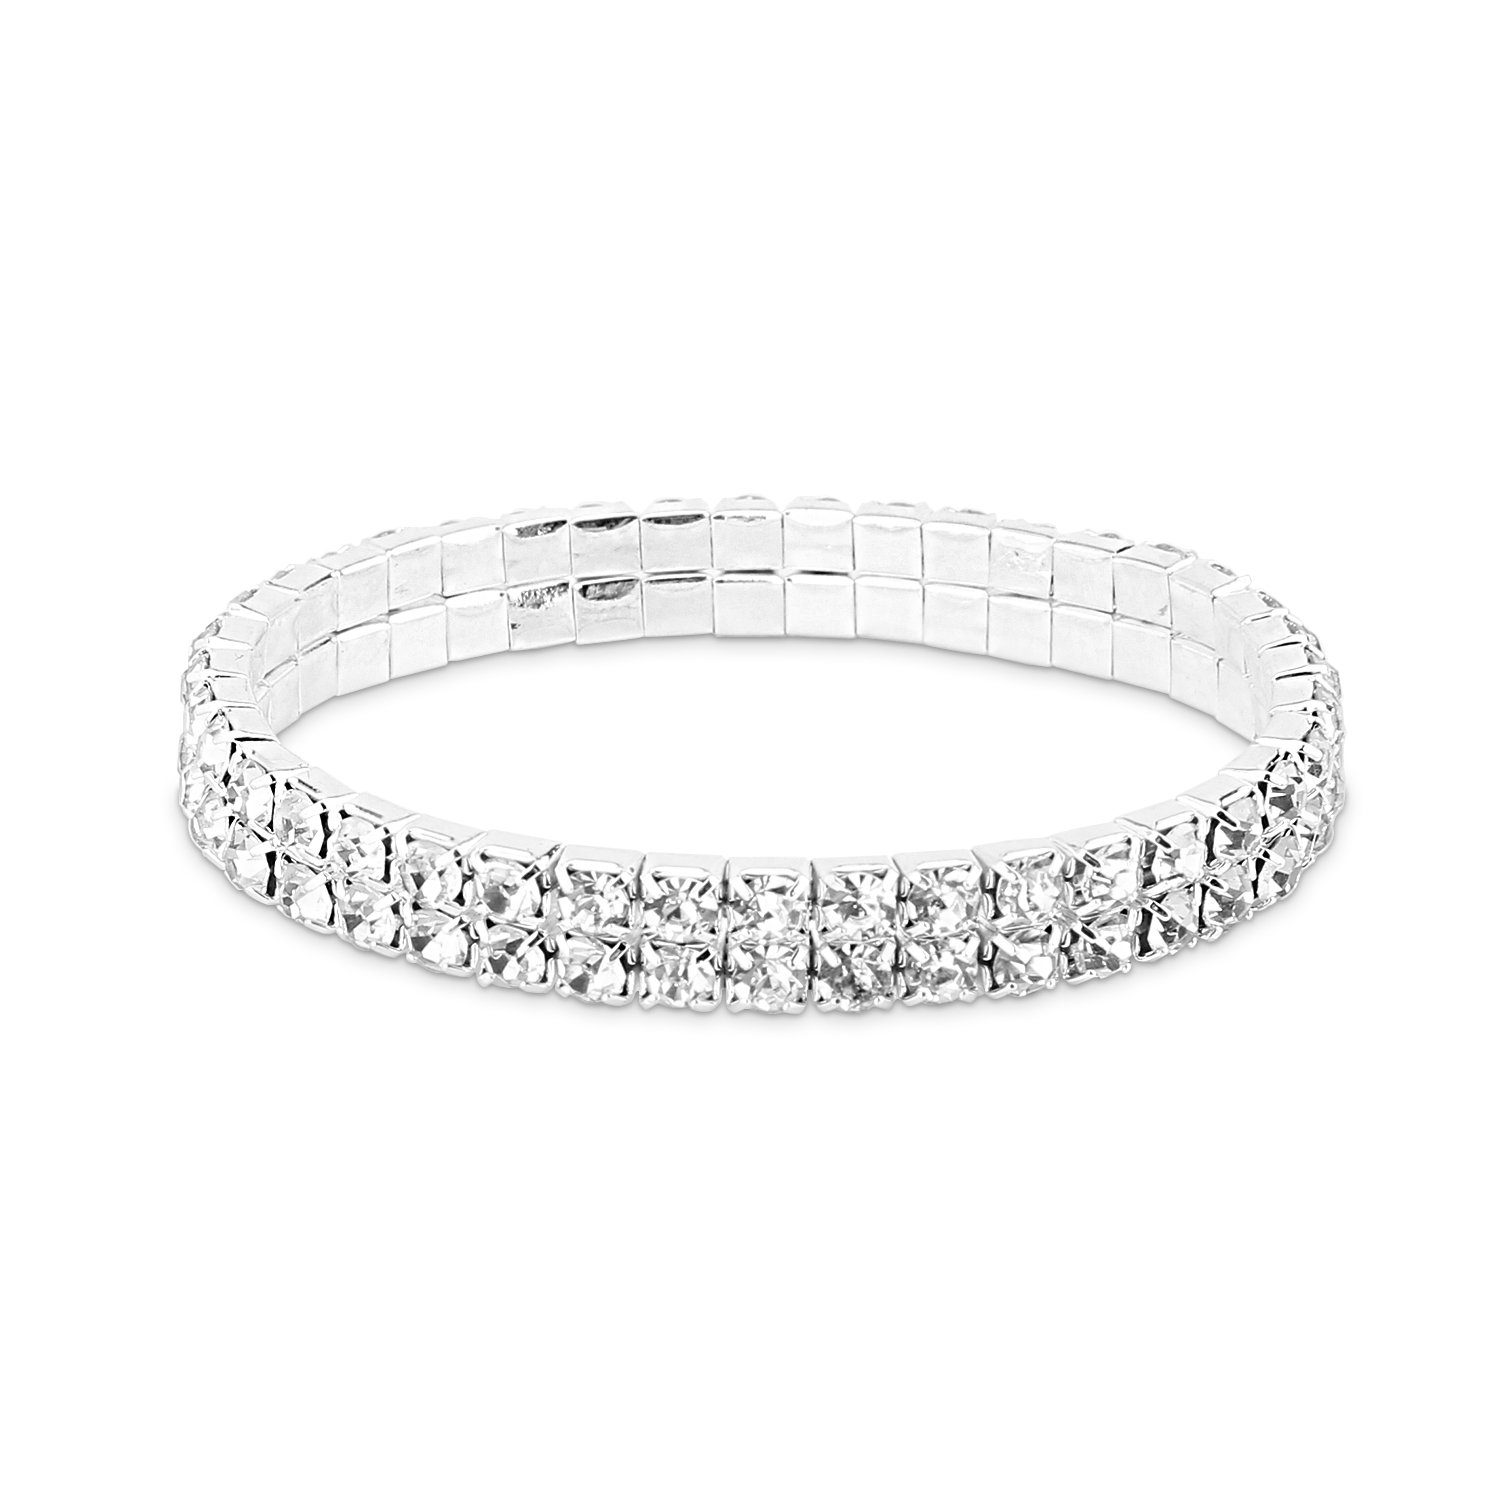 Bracelet for Women,UHIBROS Multicolor Crystal Zircon Bracelet Adjustable Fashion Braiding Bangle Twisted Mesh Bracelet (2 Row Sliver)